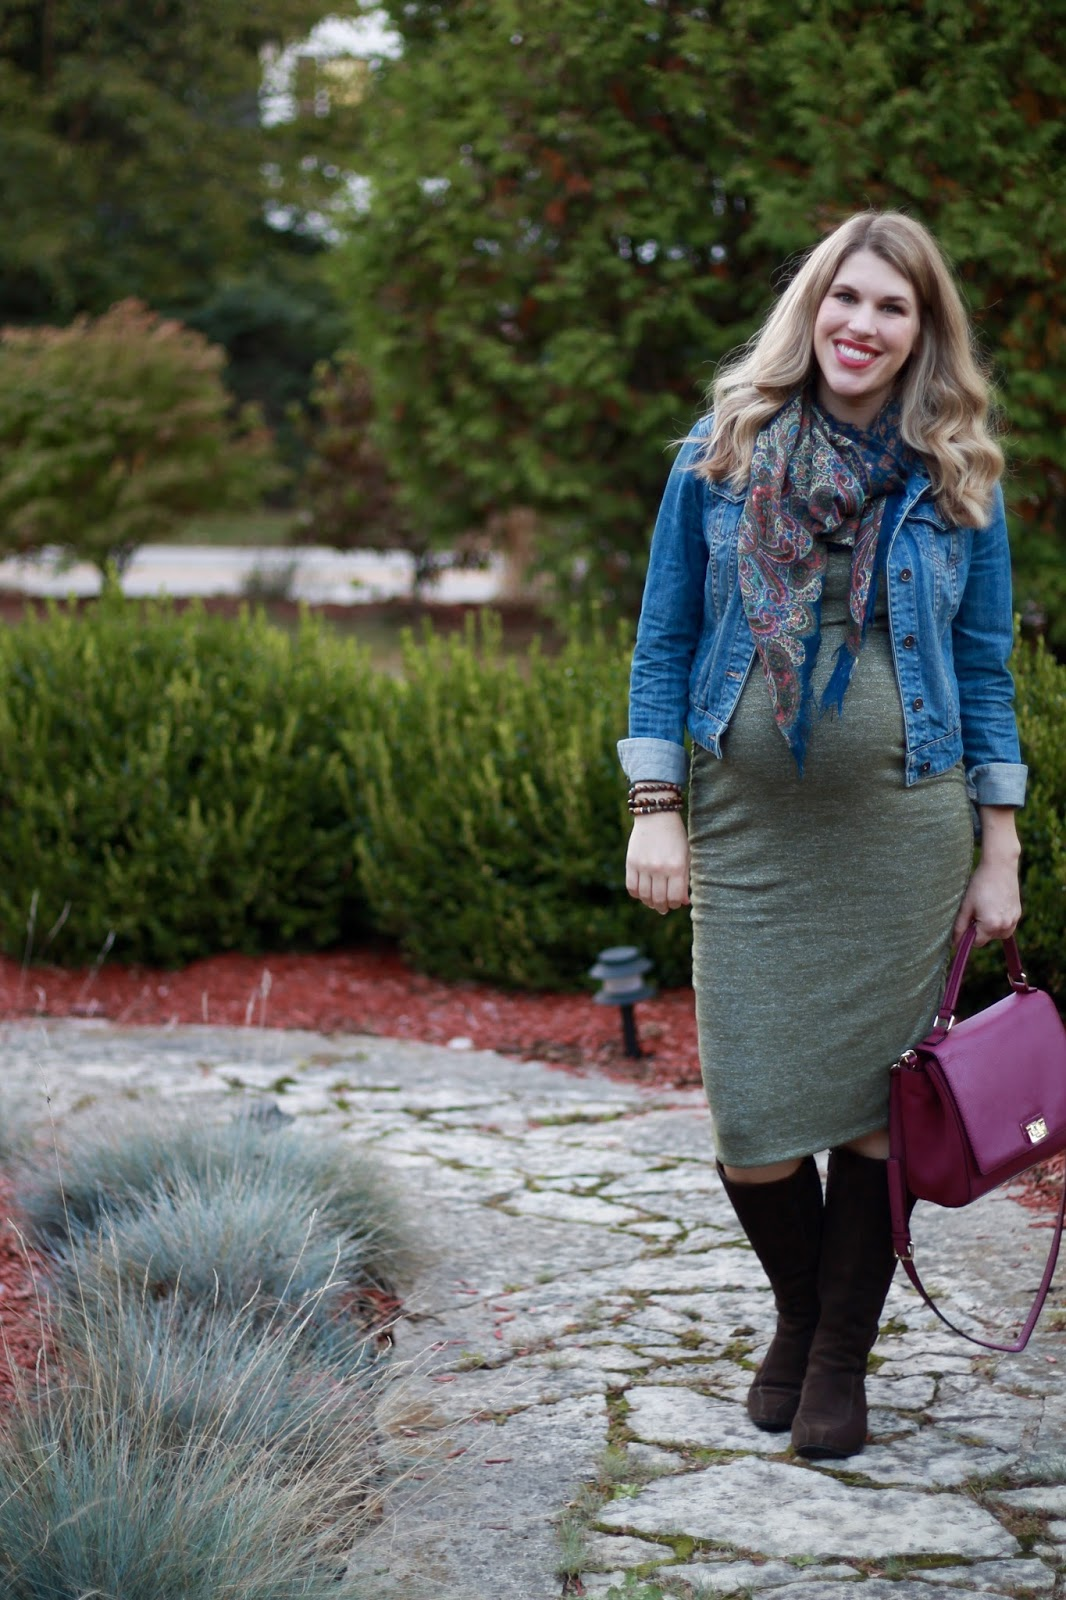 olive maternity dress, denim jacket, navy floral scarf, brown riding boots, berry colored bag